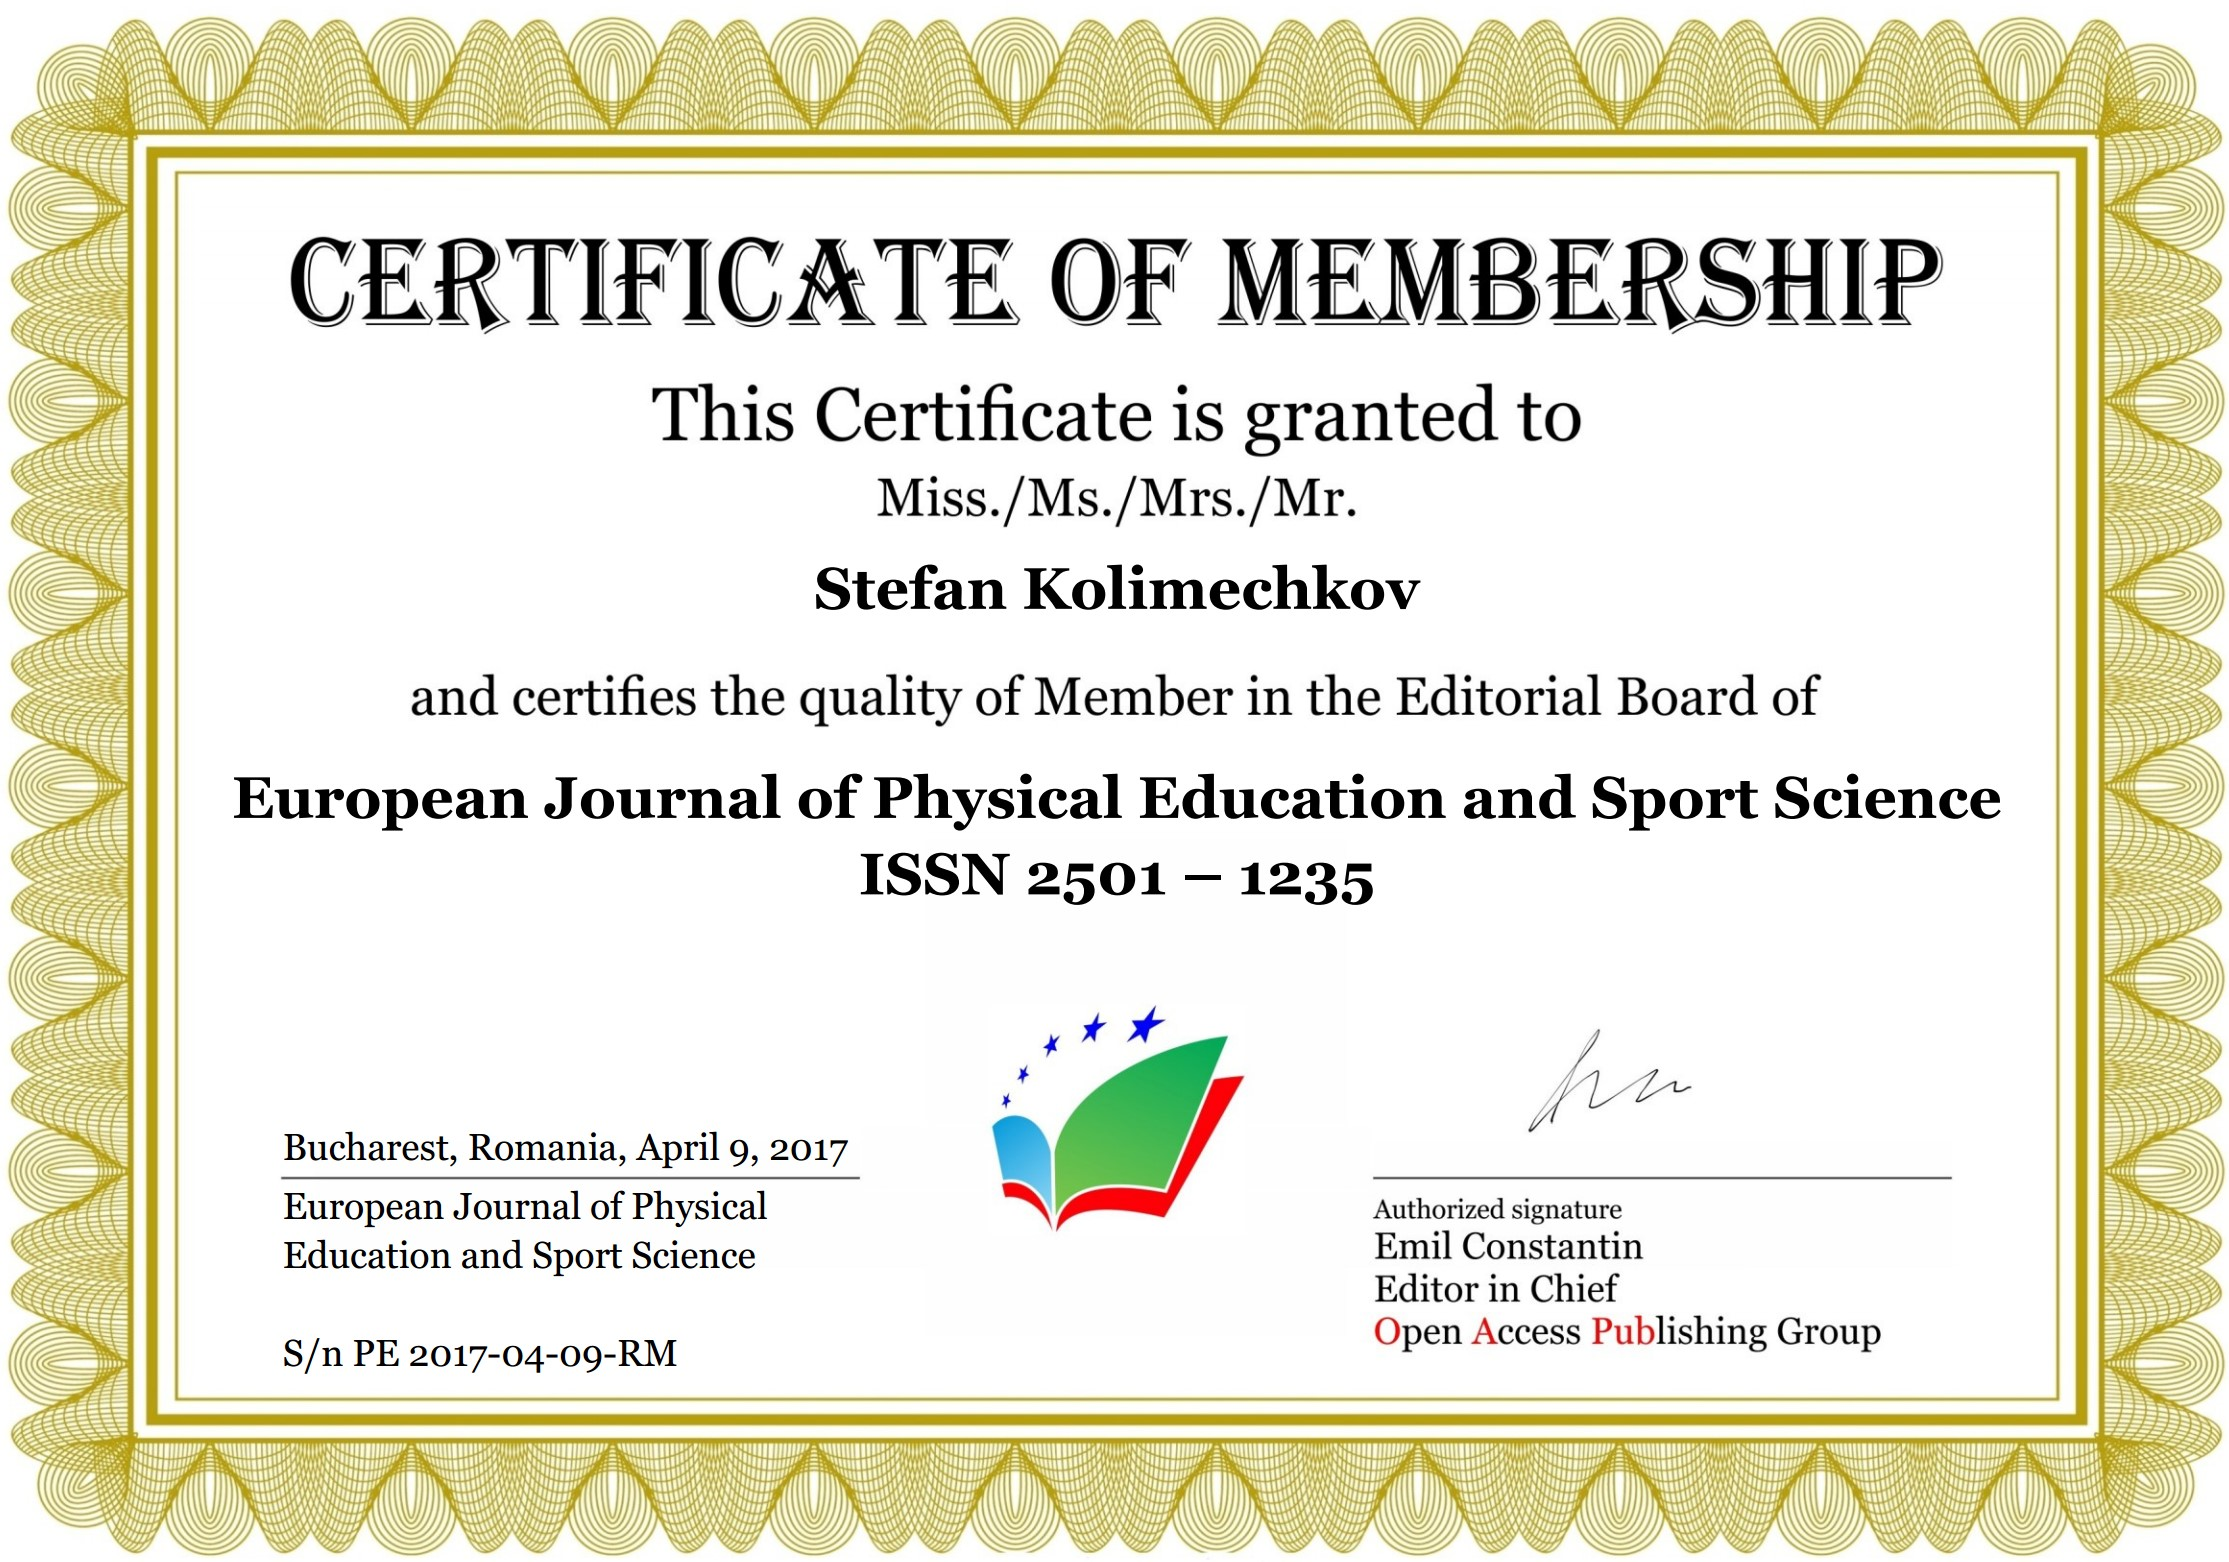 Member of the Editorial Board of the European Journal of Physical Education and Sport Science